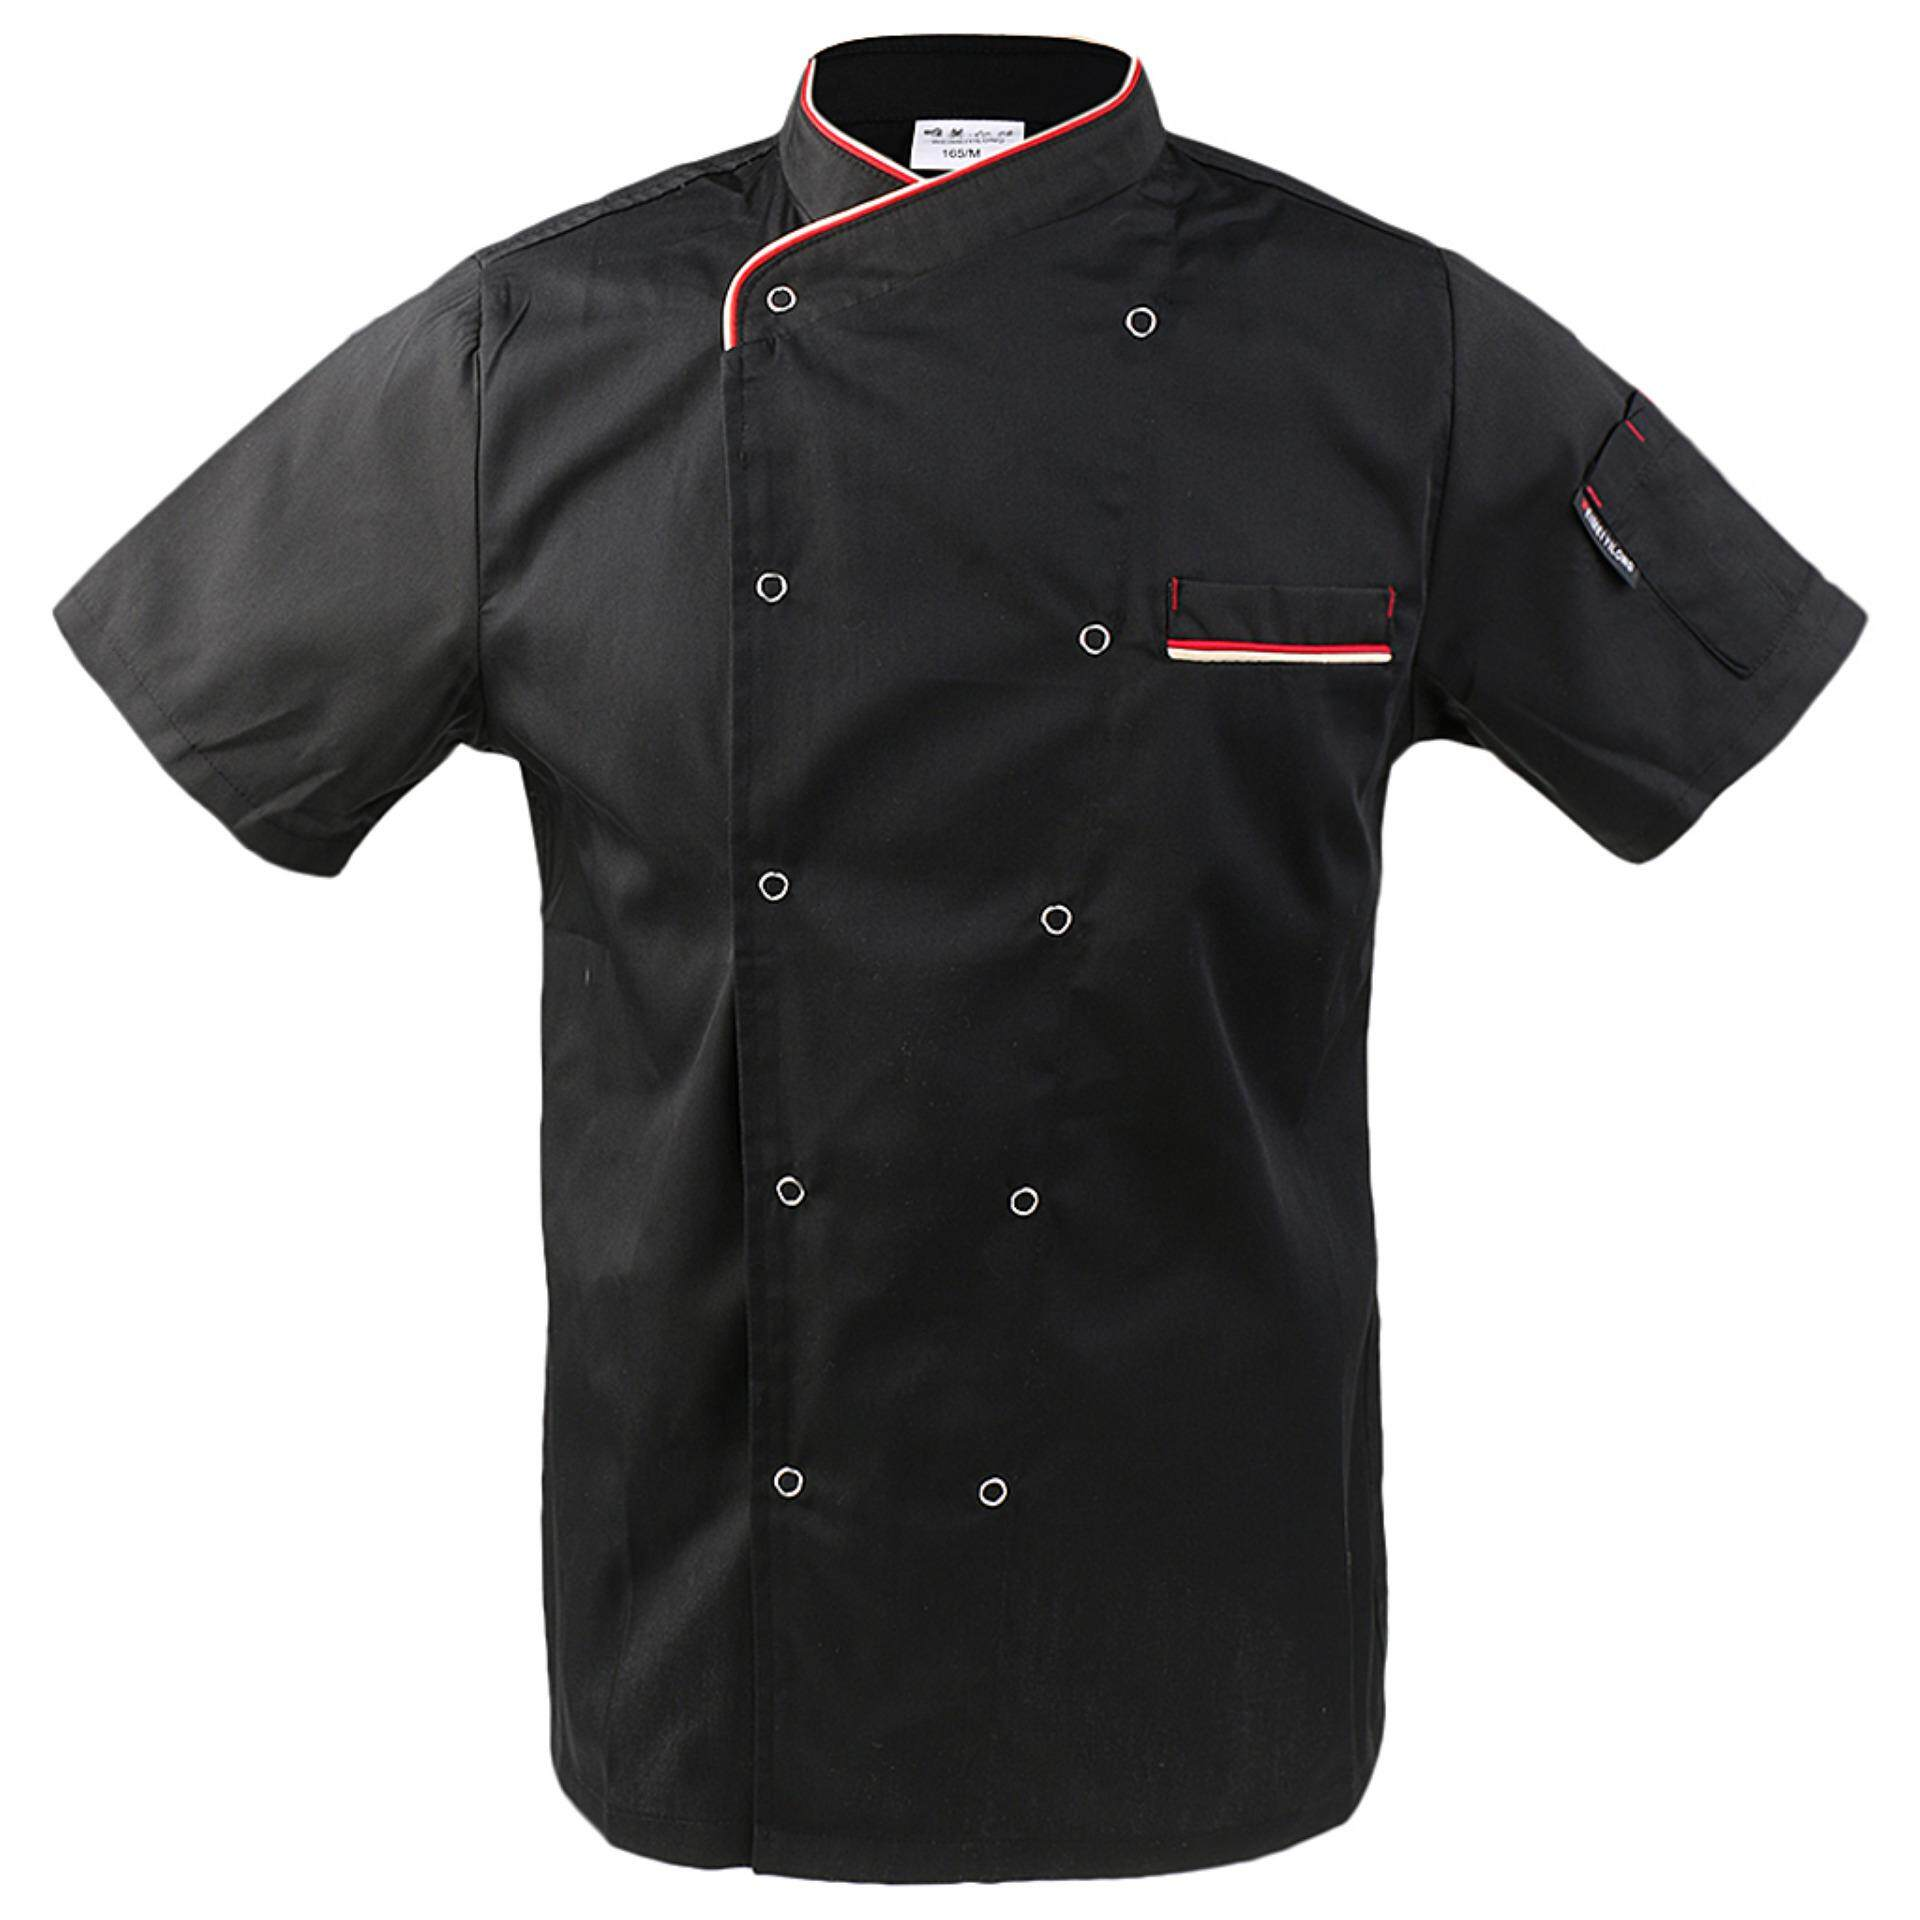 Unisex Short Sleeve Chef Jacket Coat Restaurant Cook Uniform L Black - Intl By Bolehdeals.